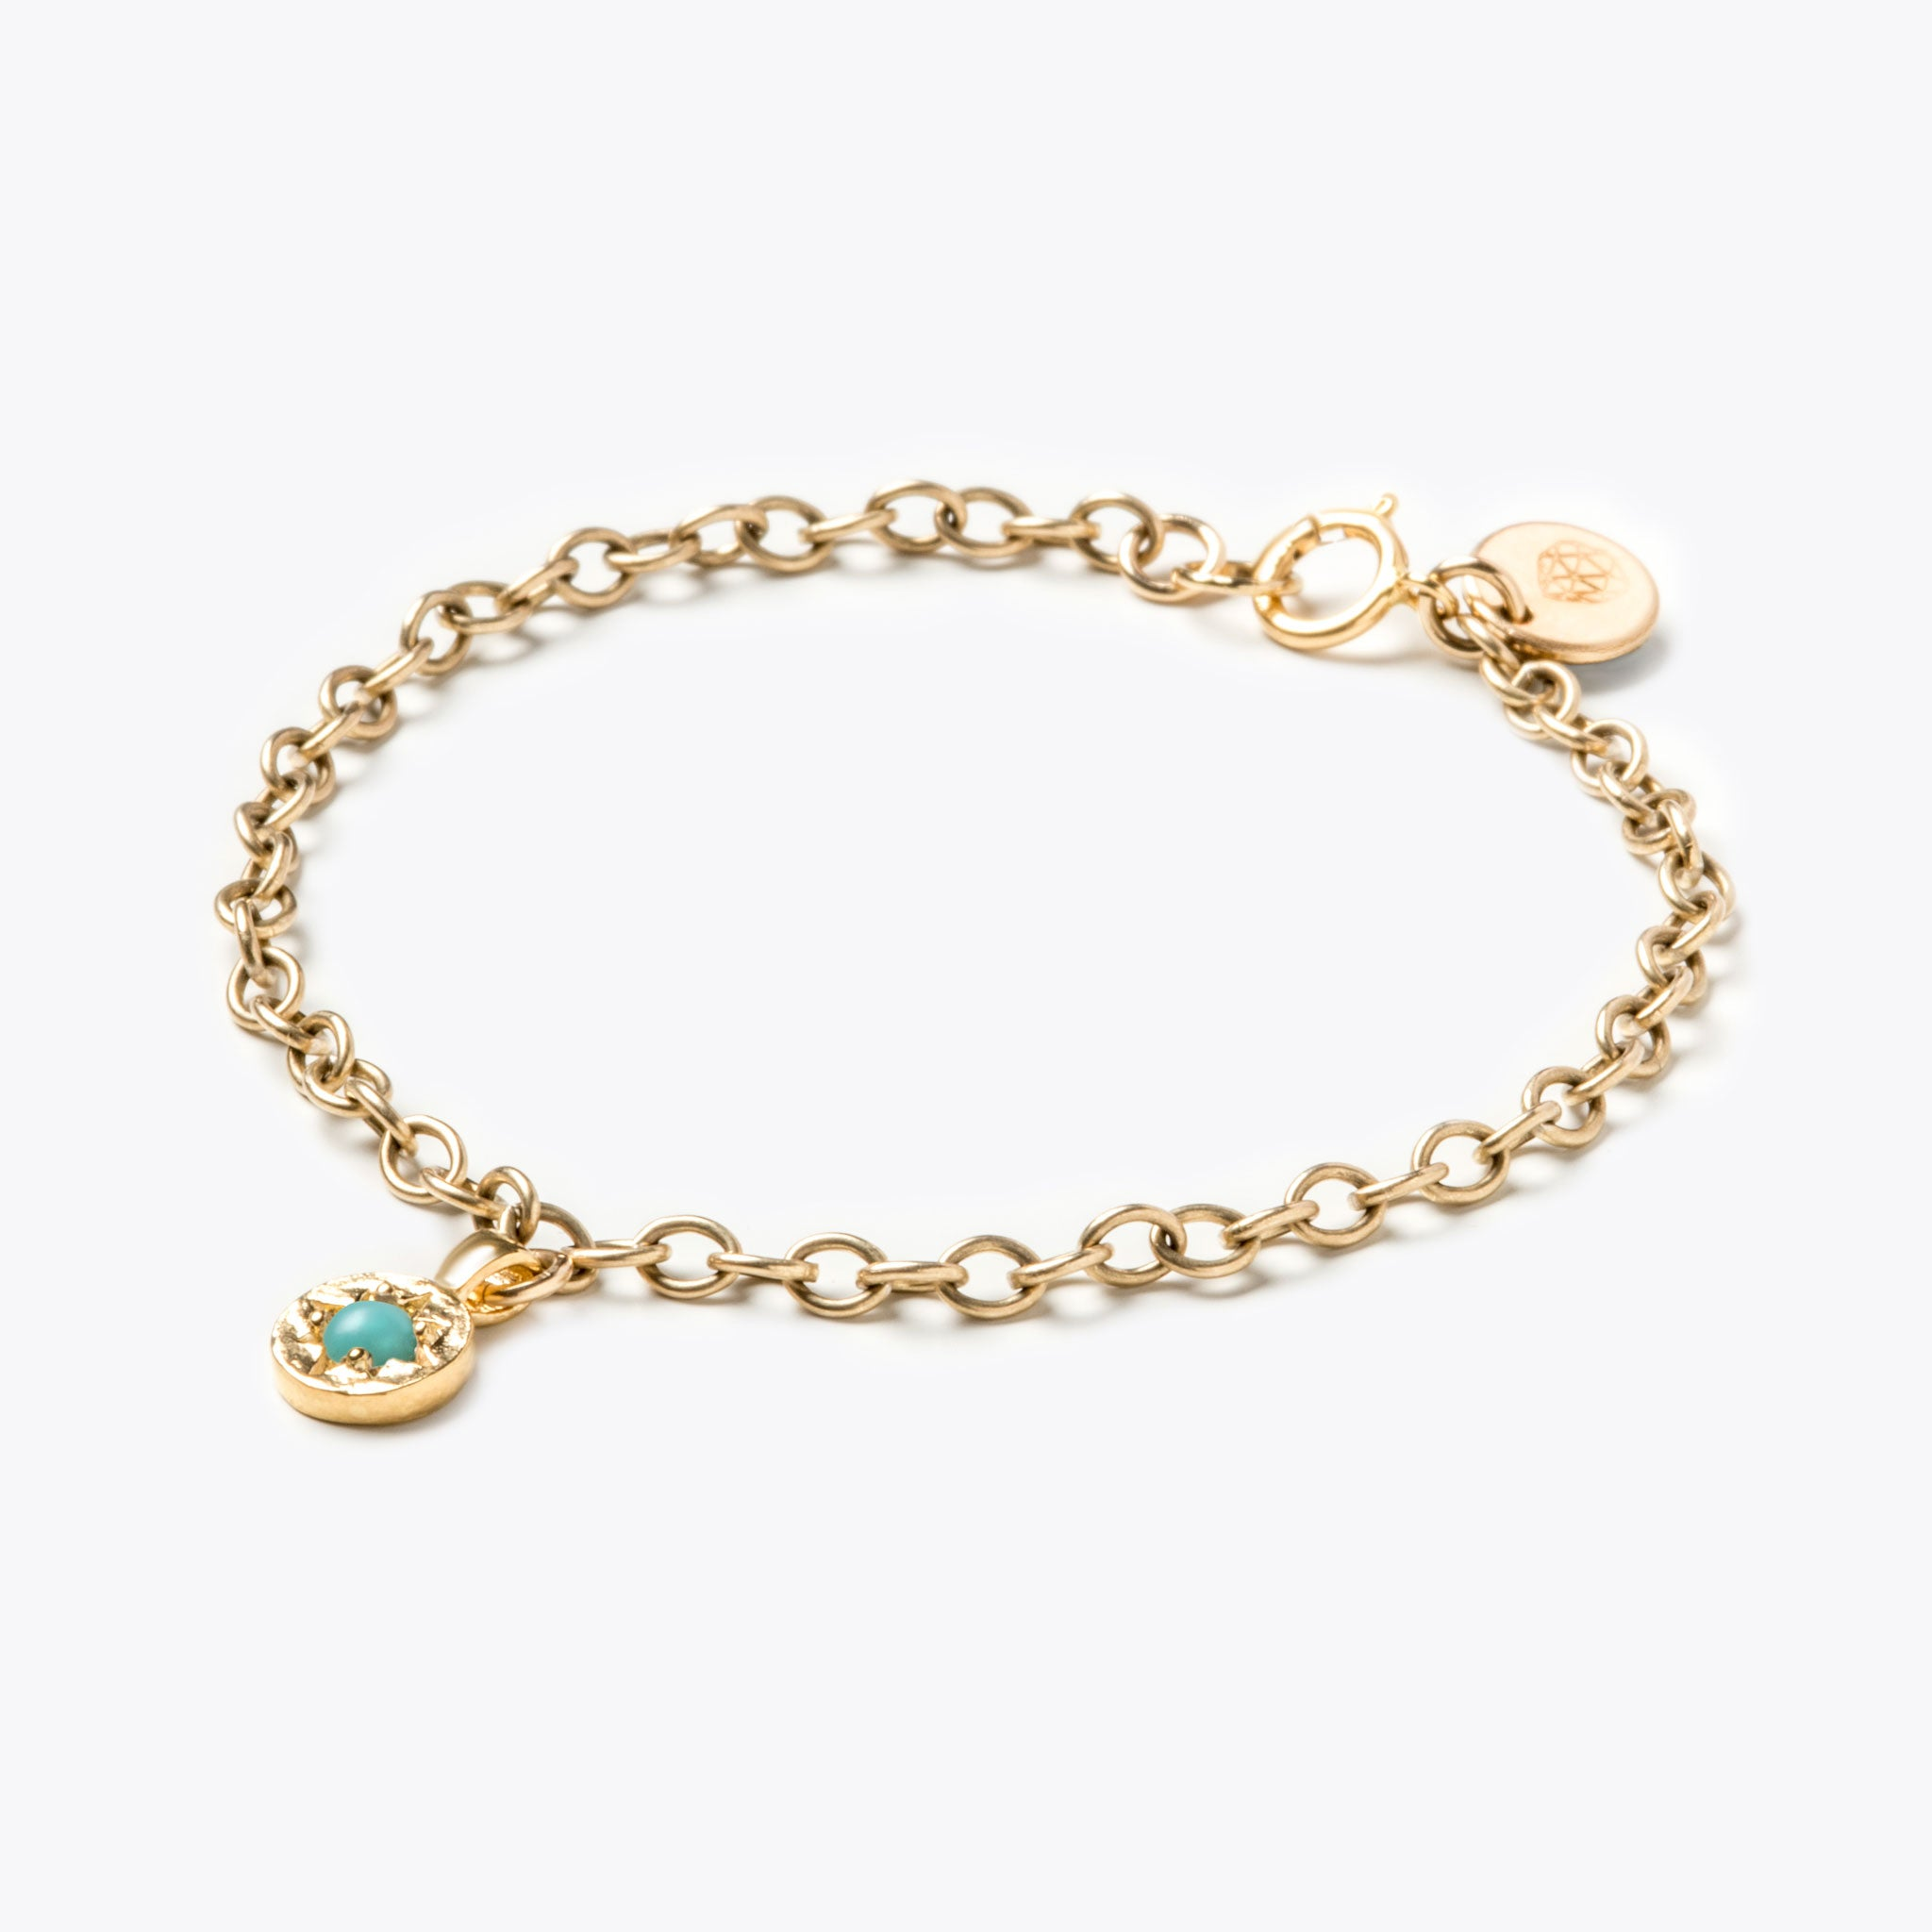 Wanderlust Life gold December birthstone bracelet. December birthstone bracelet with Turquoise semi precious gemstone. Wanderlust Life handmade jewellery in the UK.